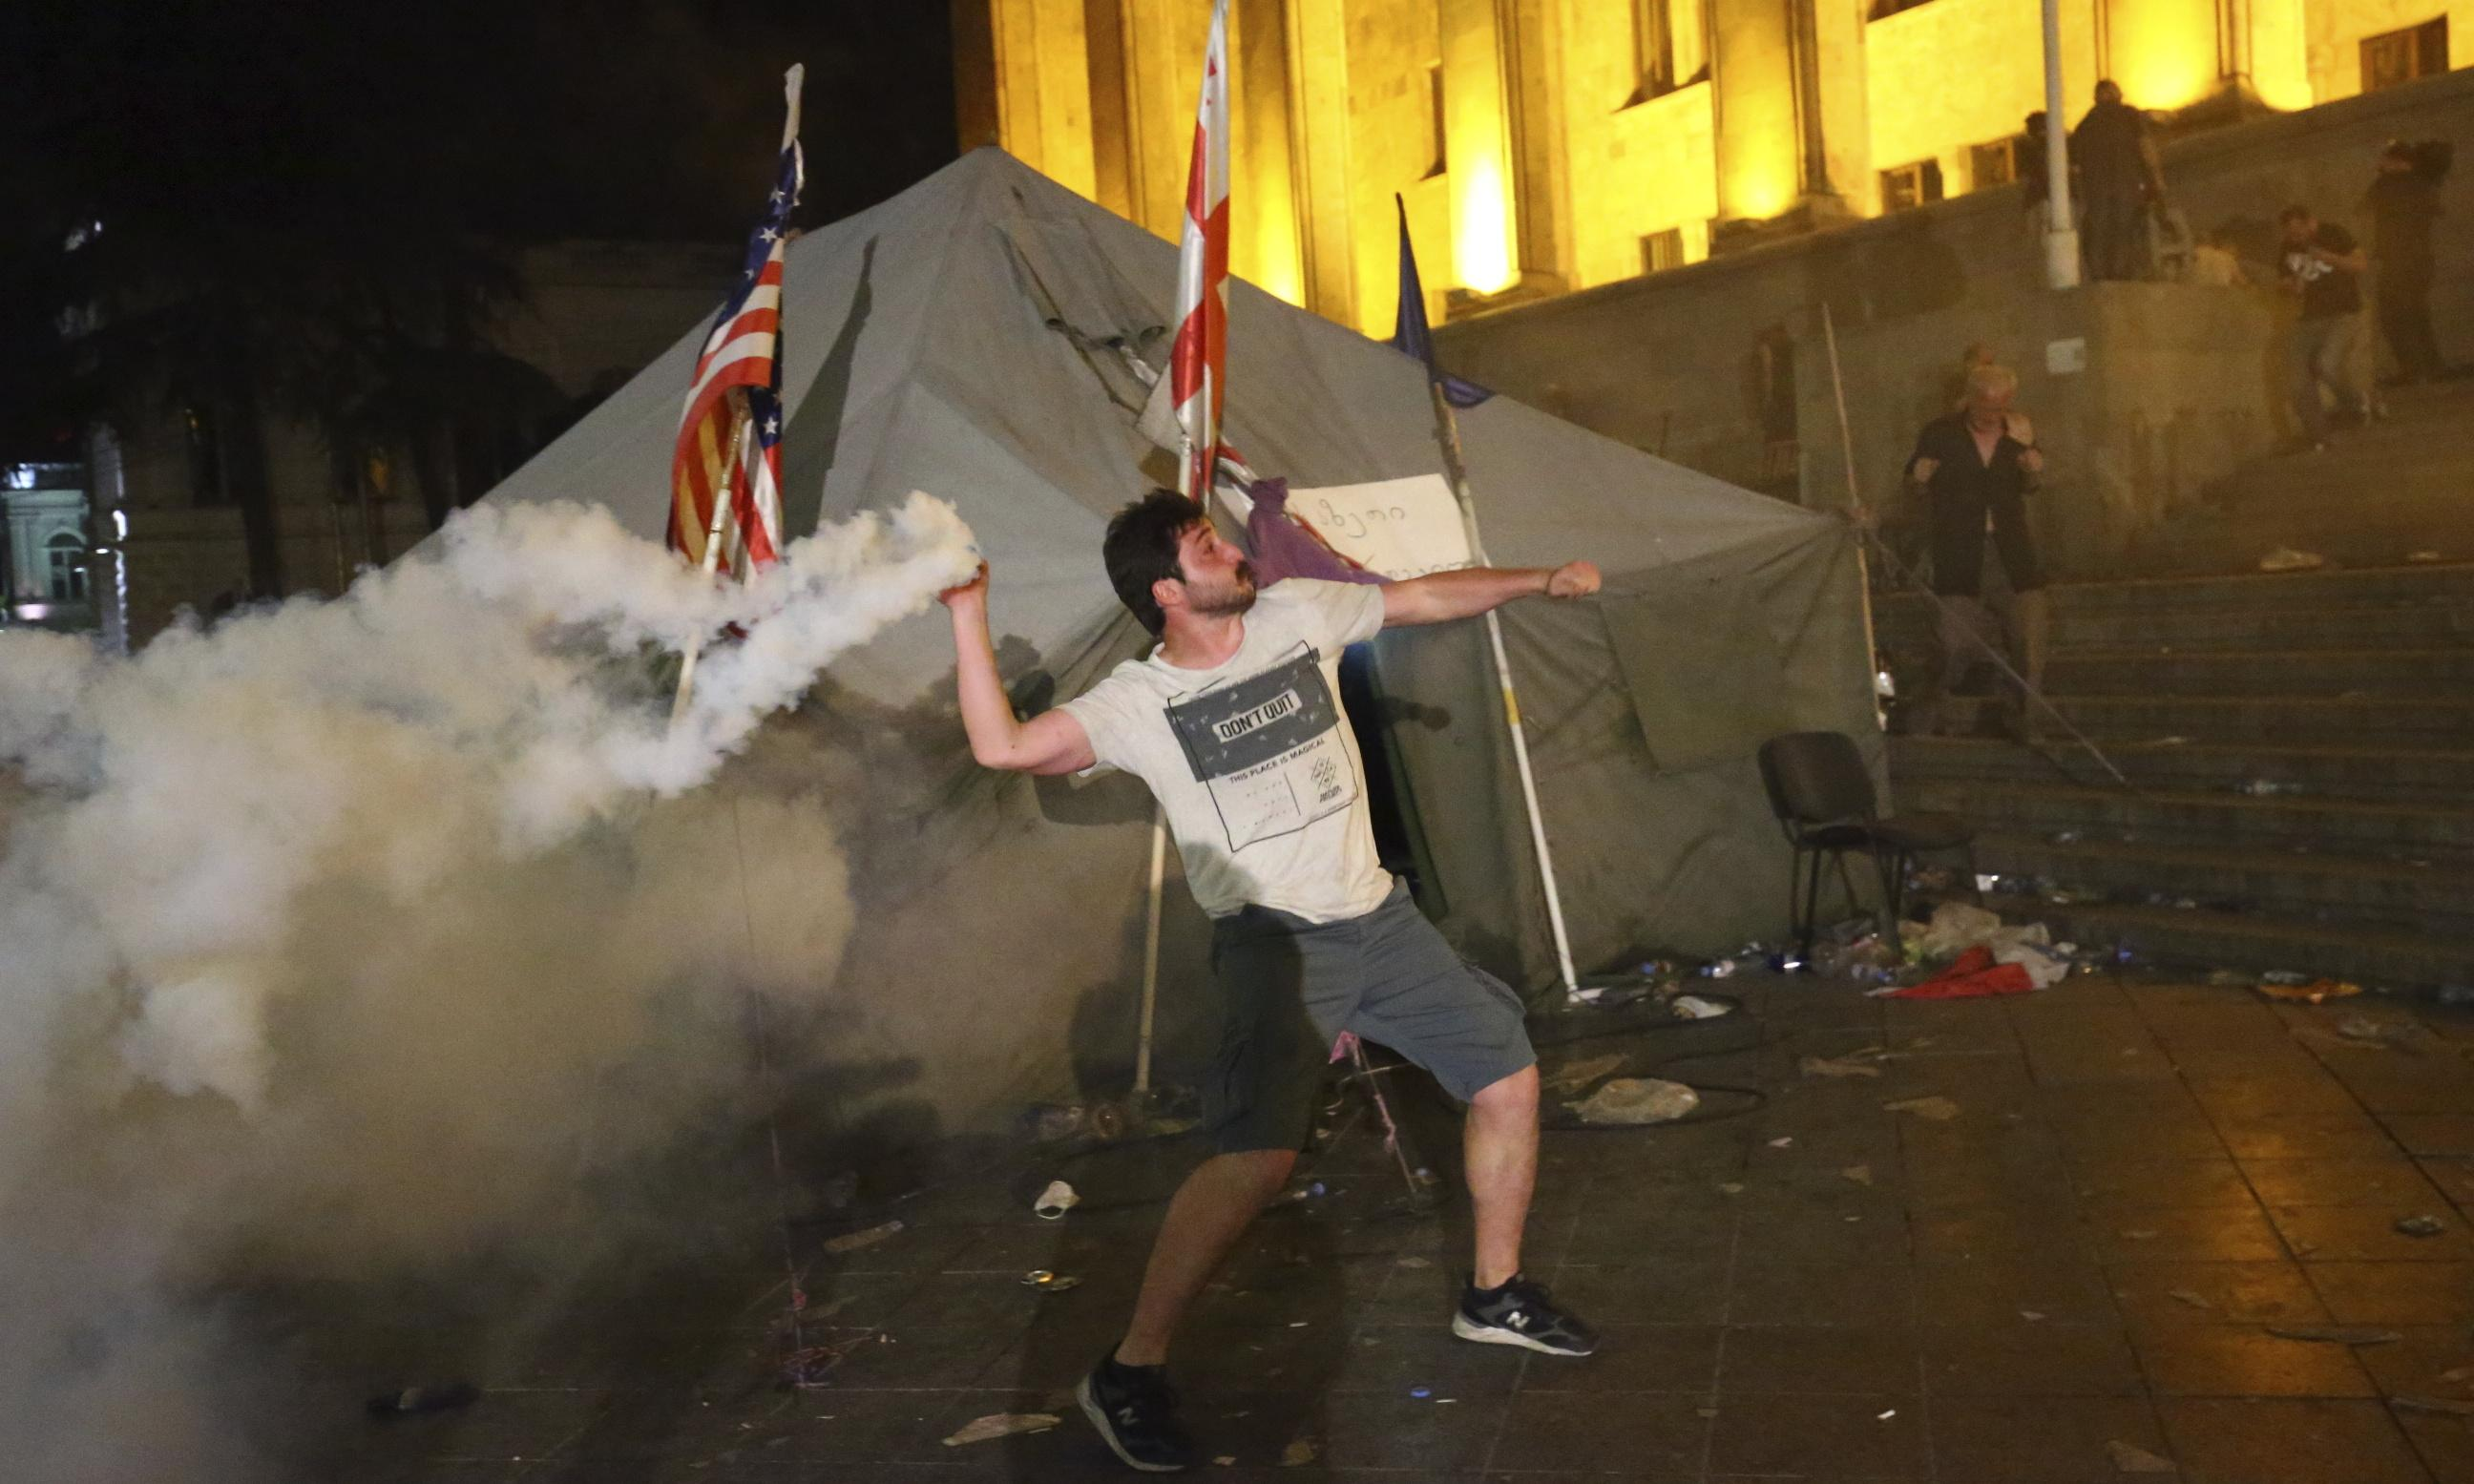 Georgian police fire teargas as Russian's visit to parliament sparks protests